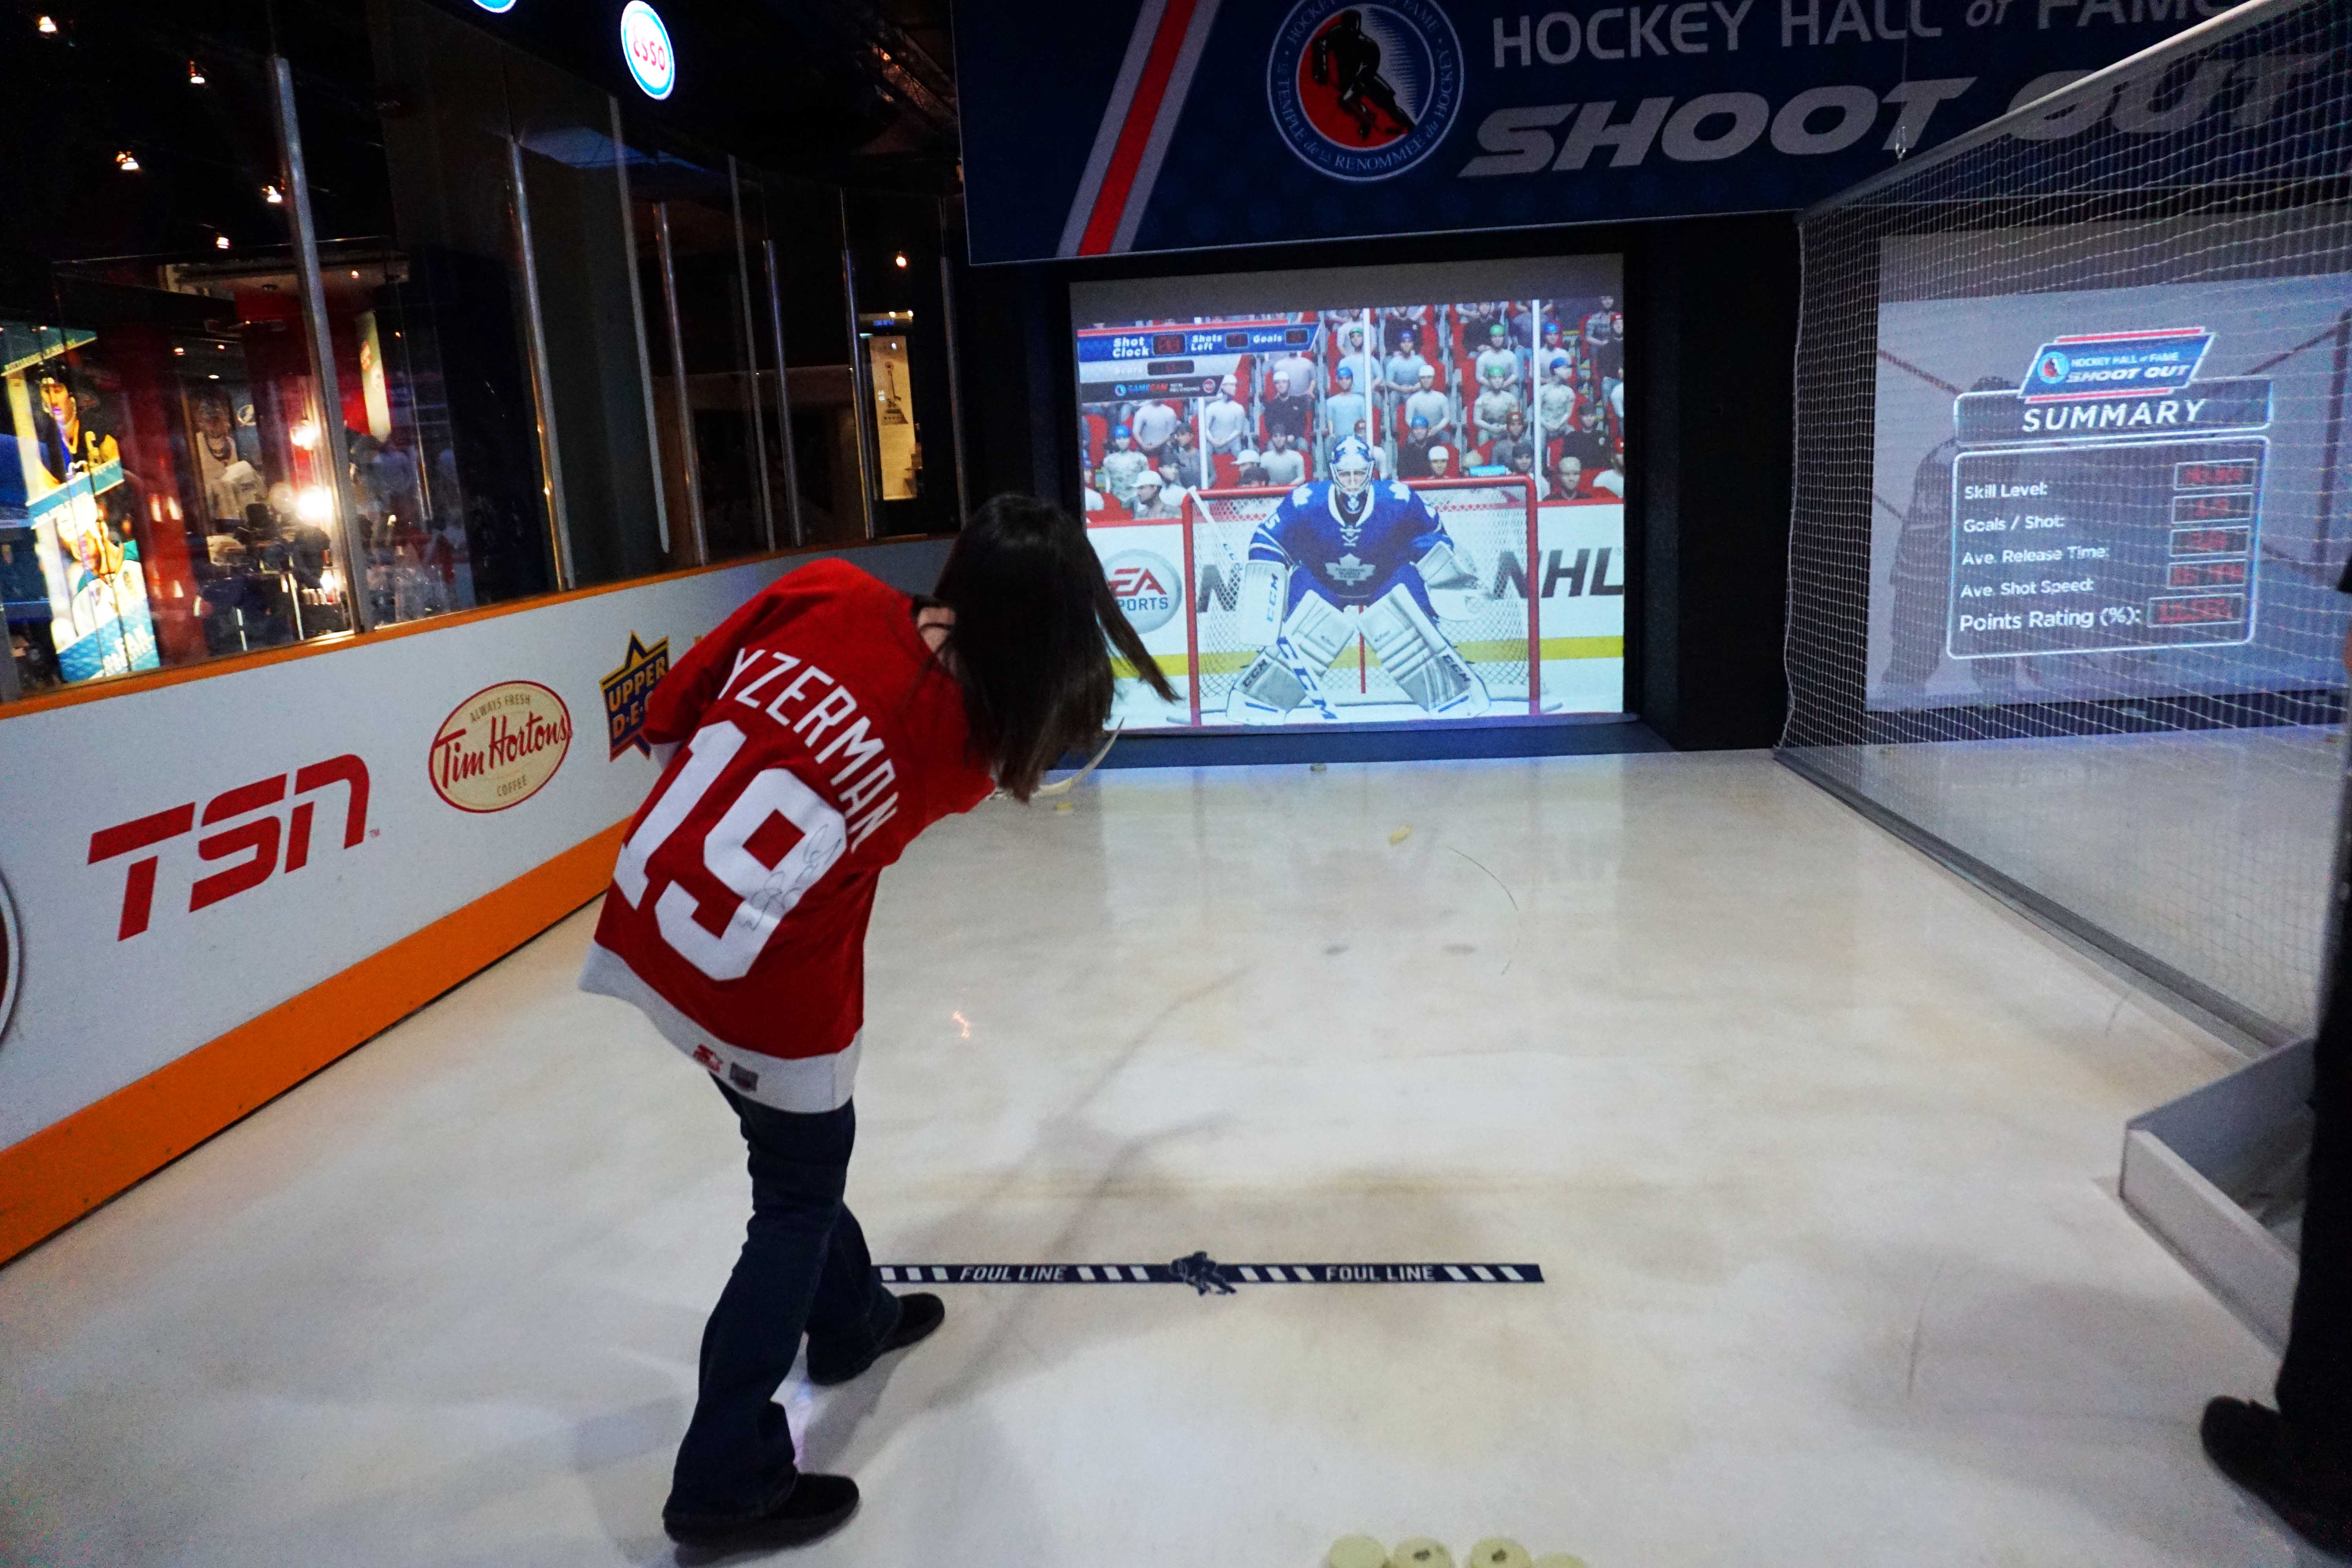 Interactive games at the Hockey Hall of Fame in Toronto, Ontario